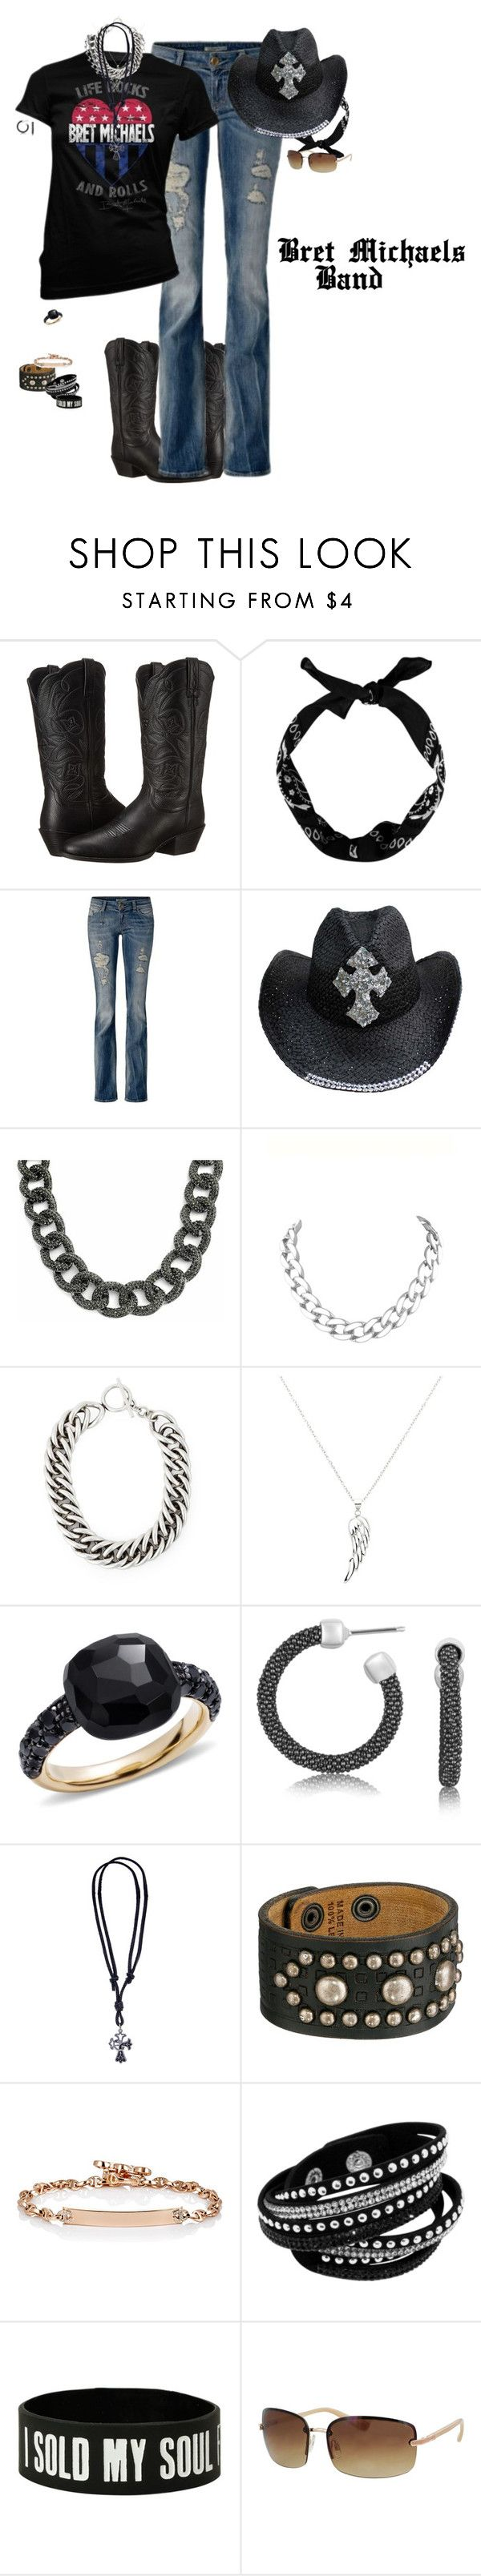 """Bret Michaels band concert outfit"" by kaylarm ❤ liked on Polyvore featuring Ariat, Bling Jewelry, Karen Kane, Yves Saint Laurent, Pomellato, Dsquared2, Hoorsenbuhs, Kay Unger New York, women's clothing and women"